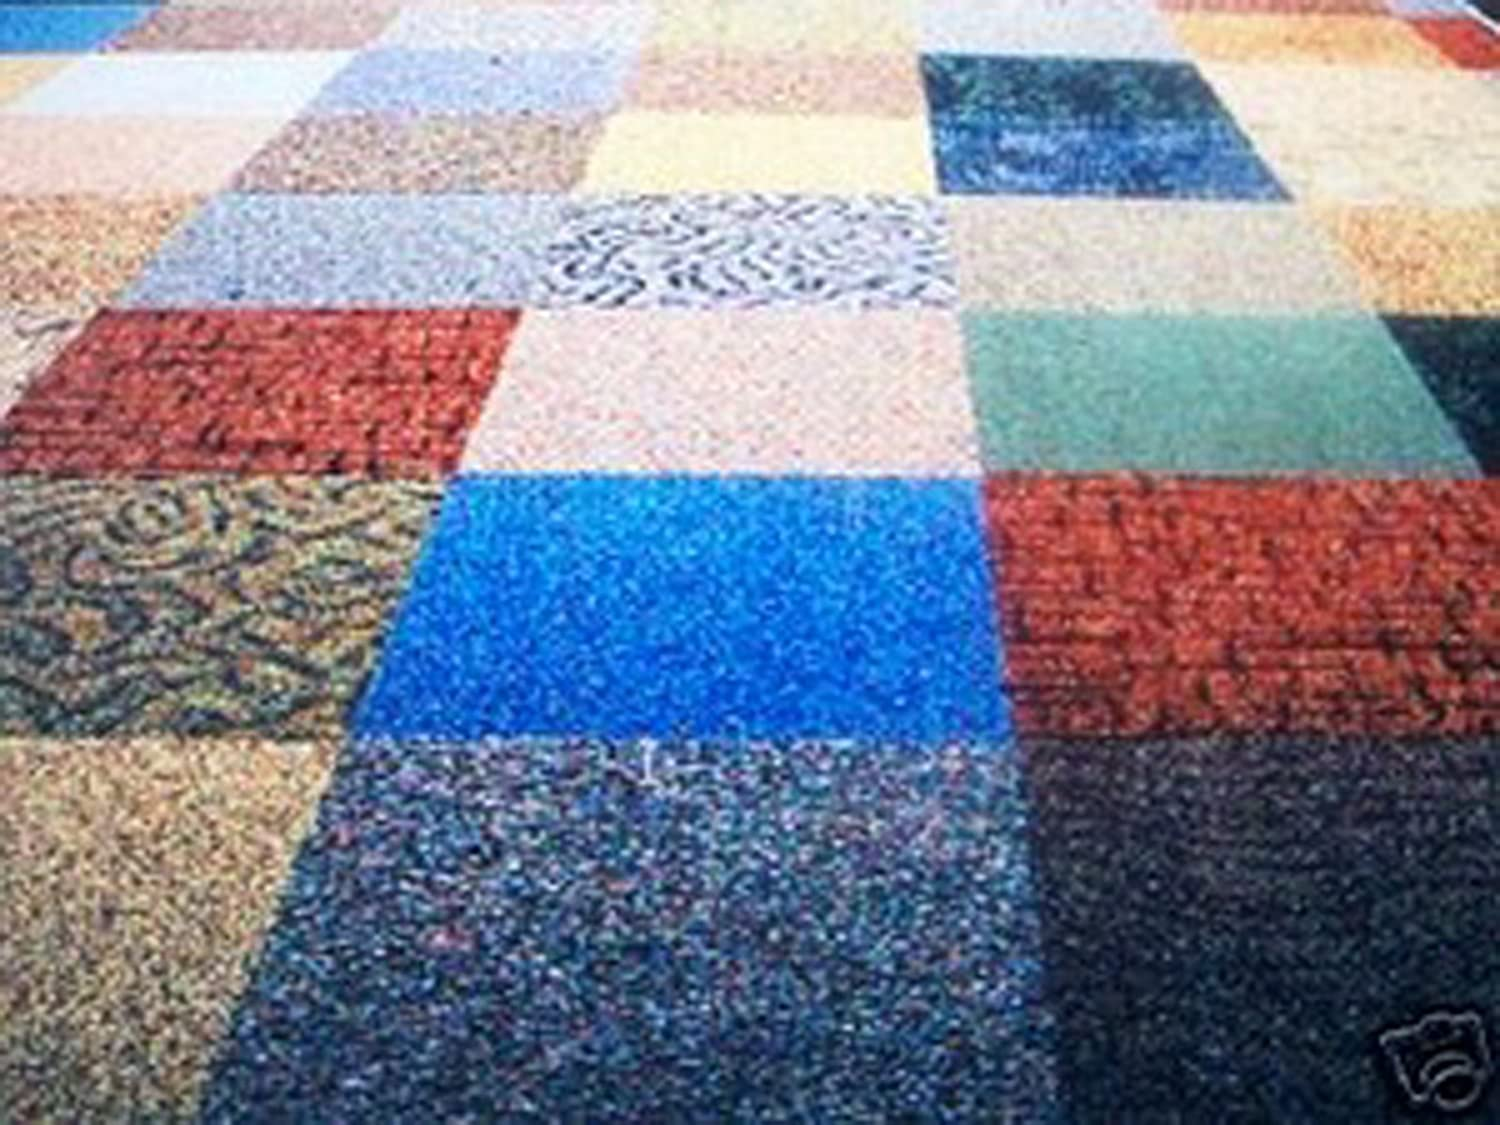 Commercial Carpet Tile - Random Assorted Colors: Household Carpeting ...